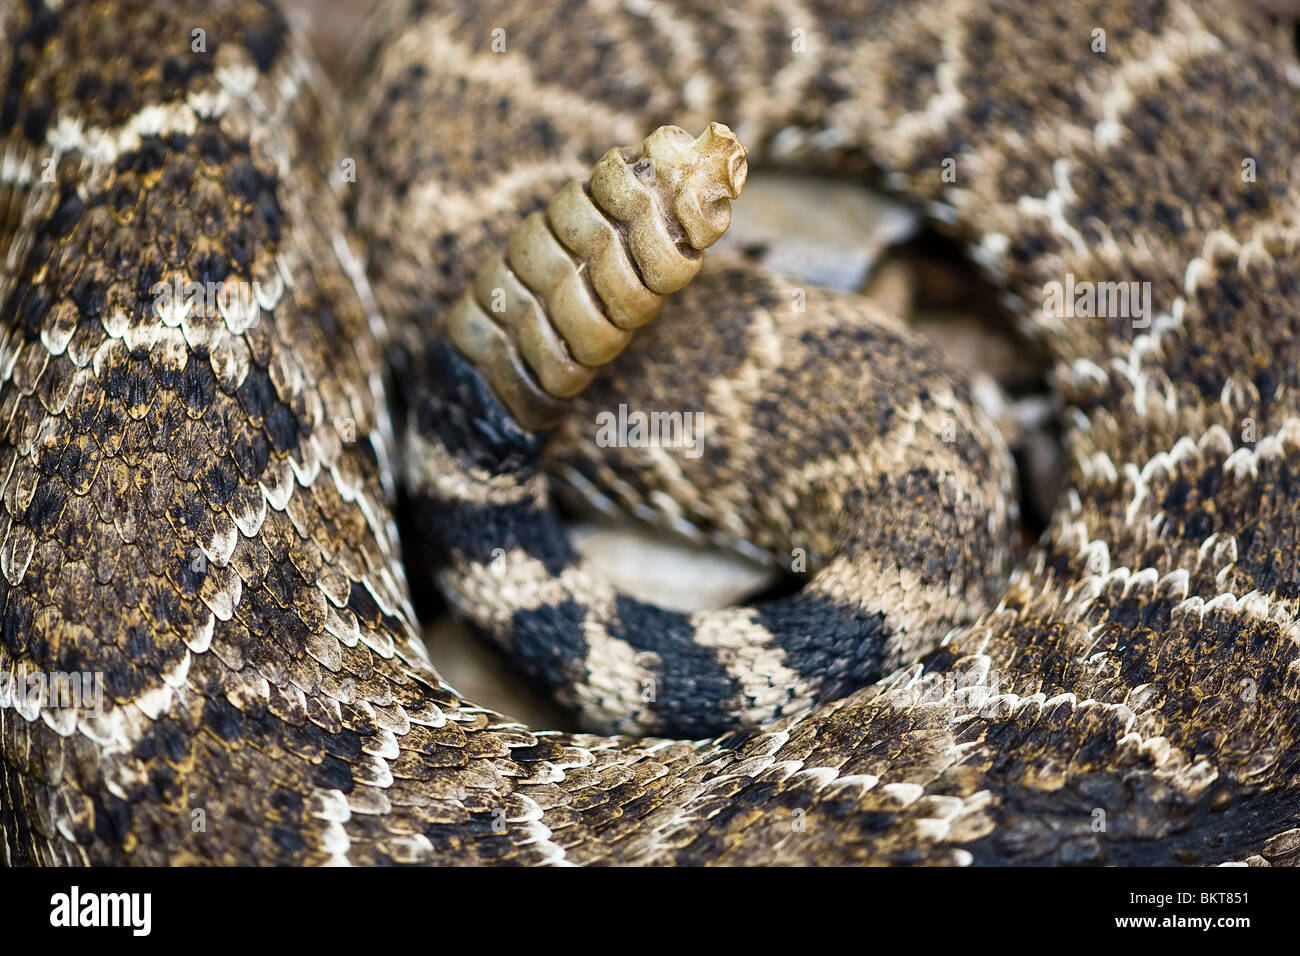 Rattle snake coil - the friendly end. - Stock Image